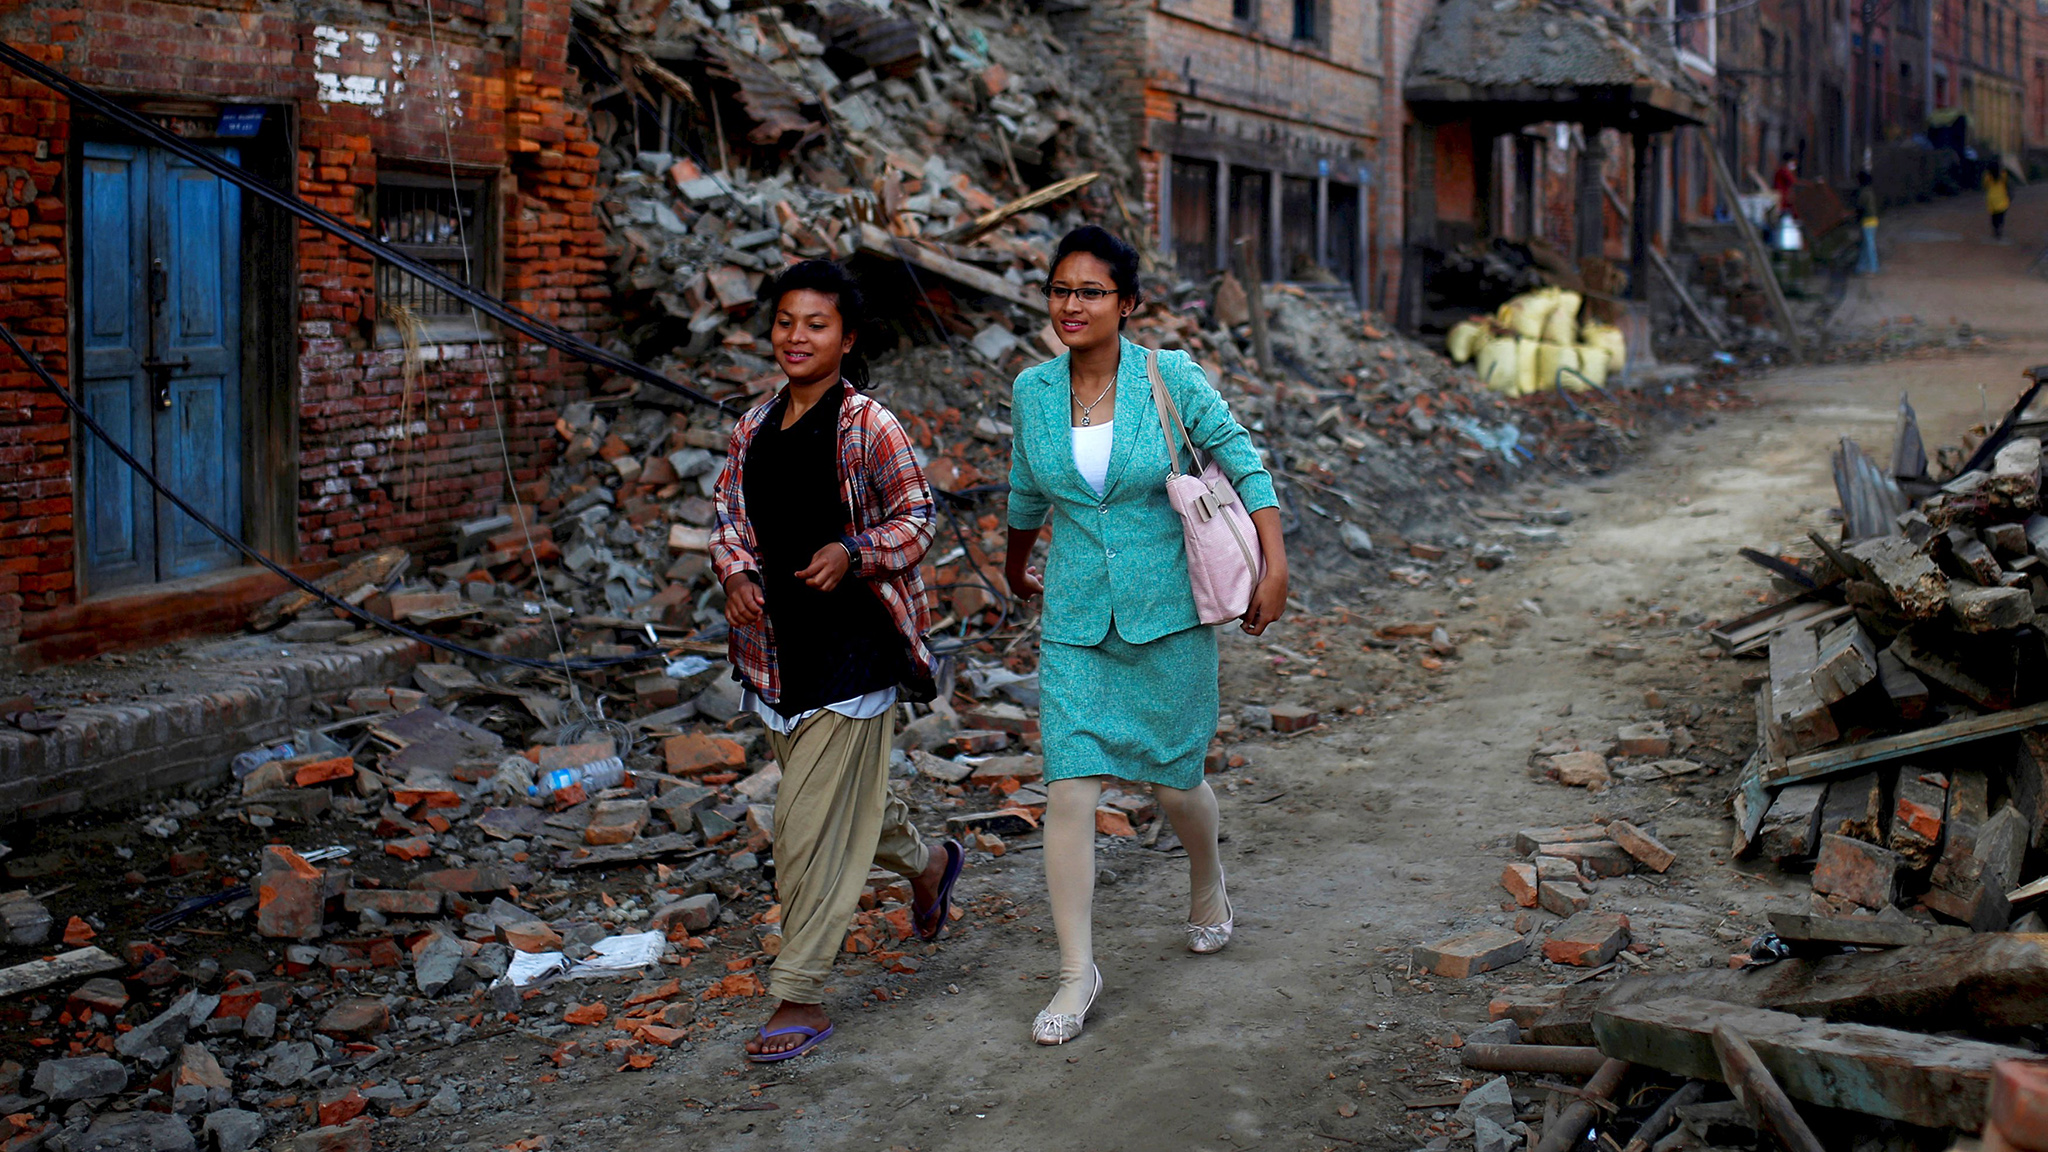 Women walk through debris in the early morning hours in Bhaktapur